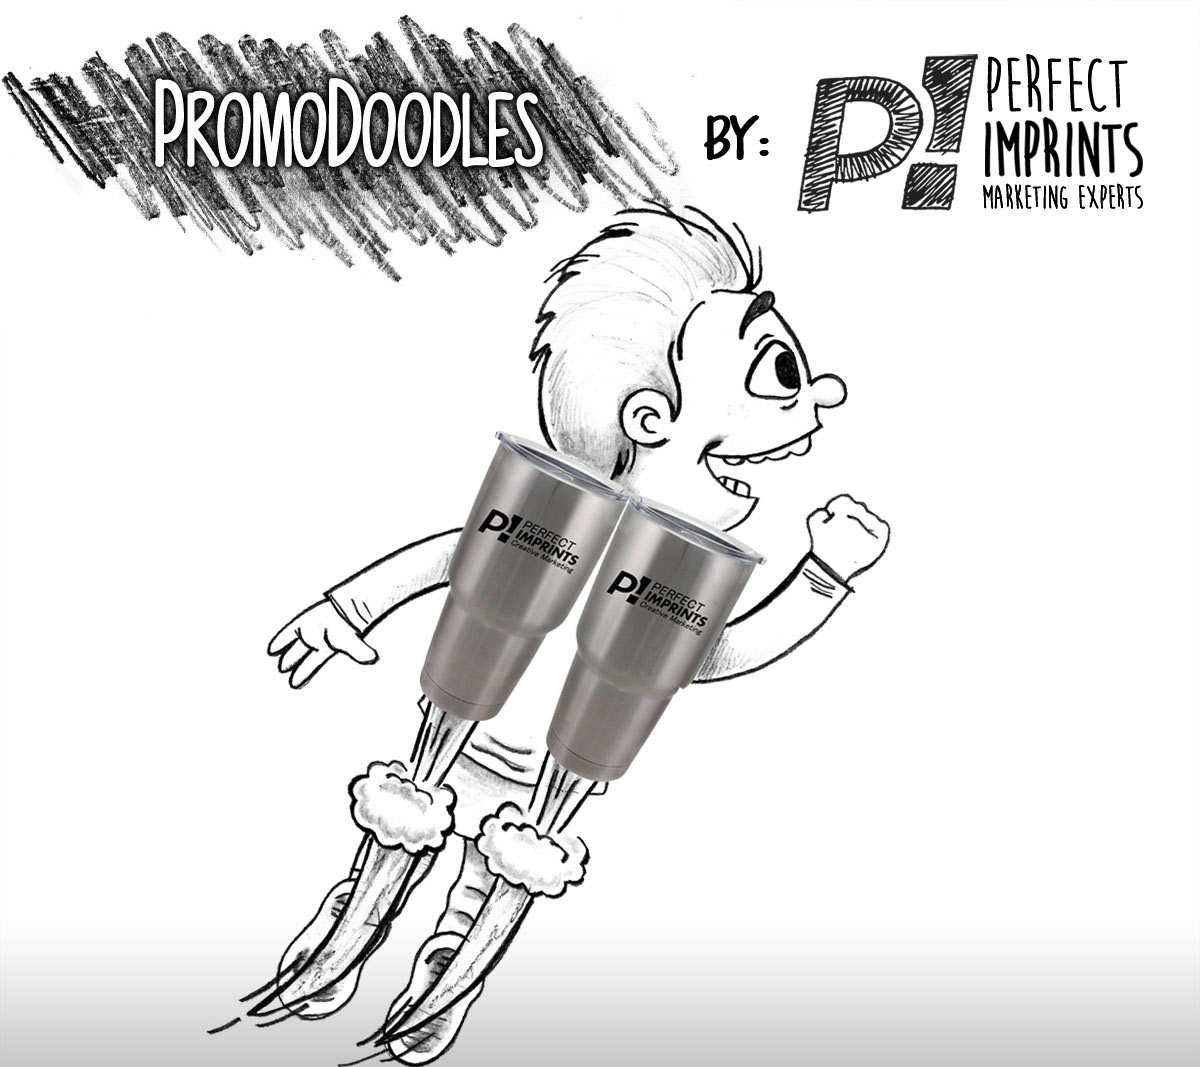 PromoDoodles by Perfect Imprints - Custom Stainless Steel Tumblers